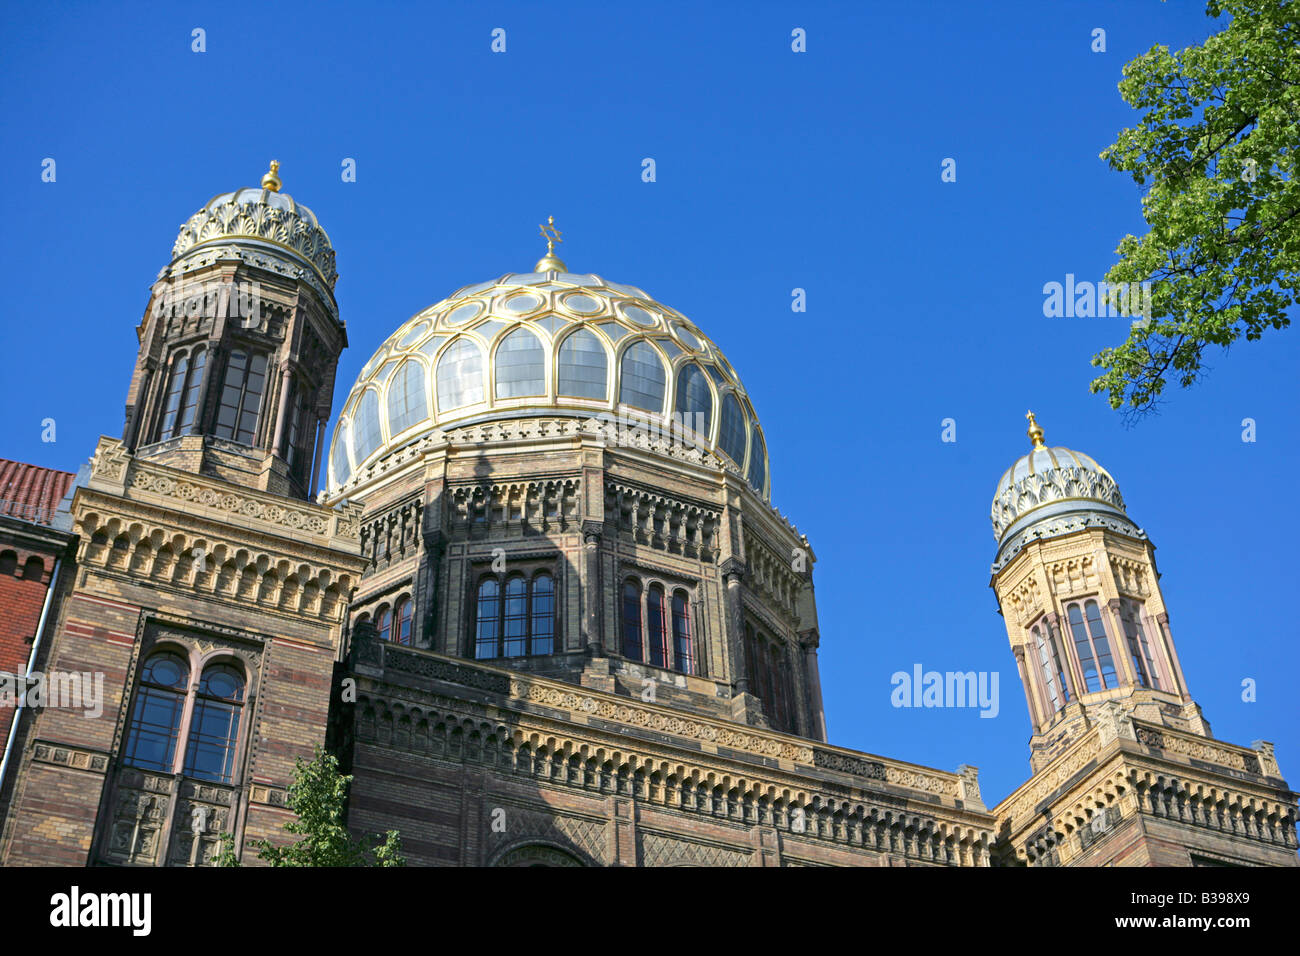 Deutschland, Berlin, Kuppel der neuen Synagoge, Dome of the new synagogue in Berlin, Germany - Stock Image